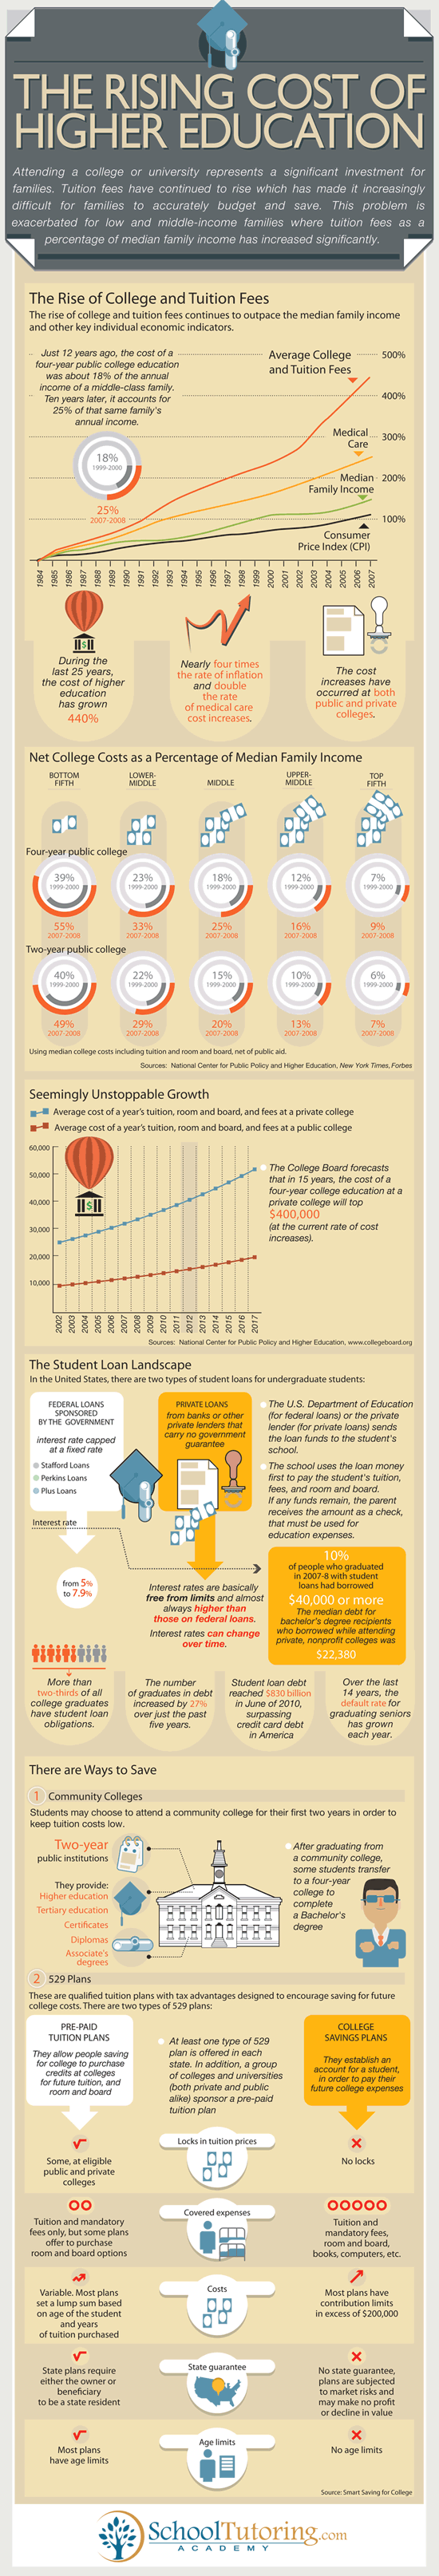 rising-costs-higher-education-infographic